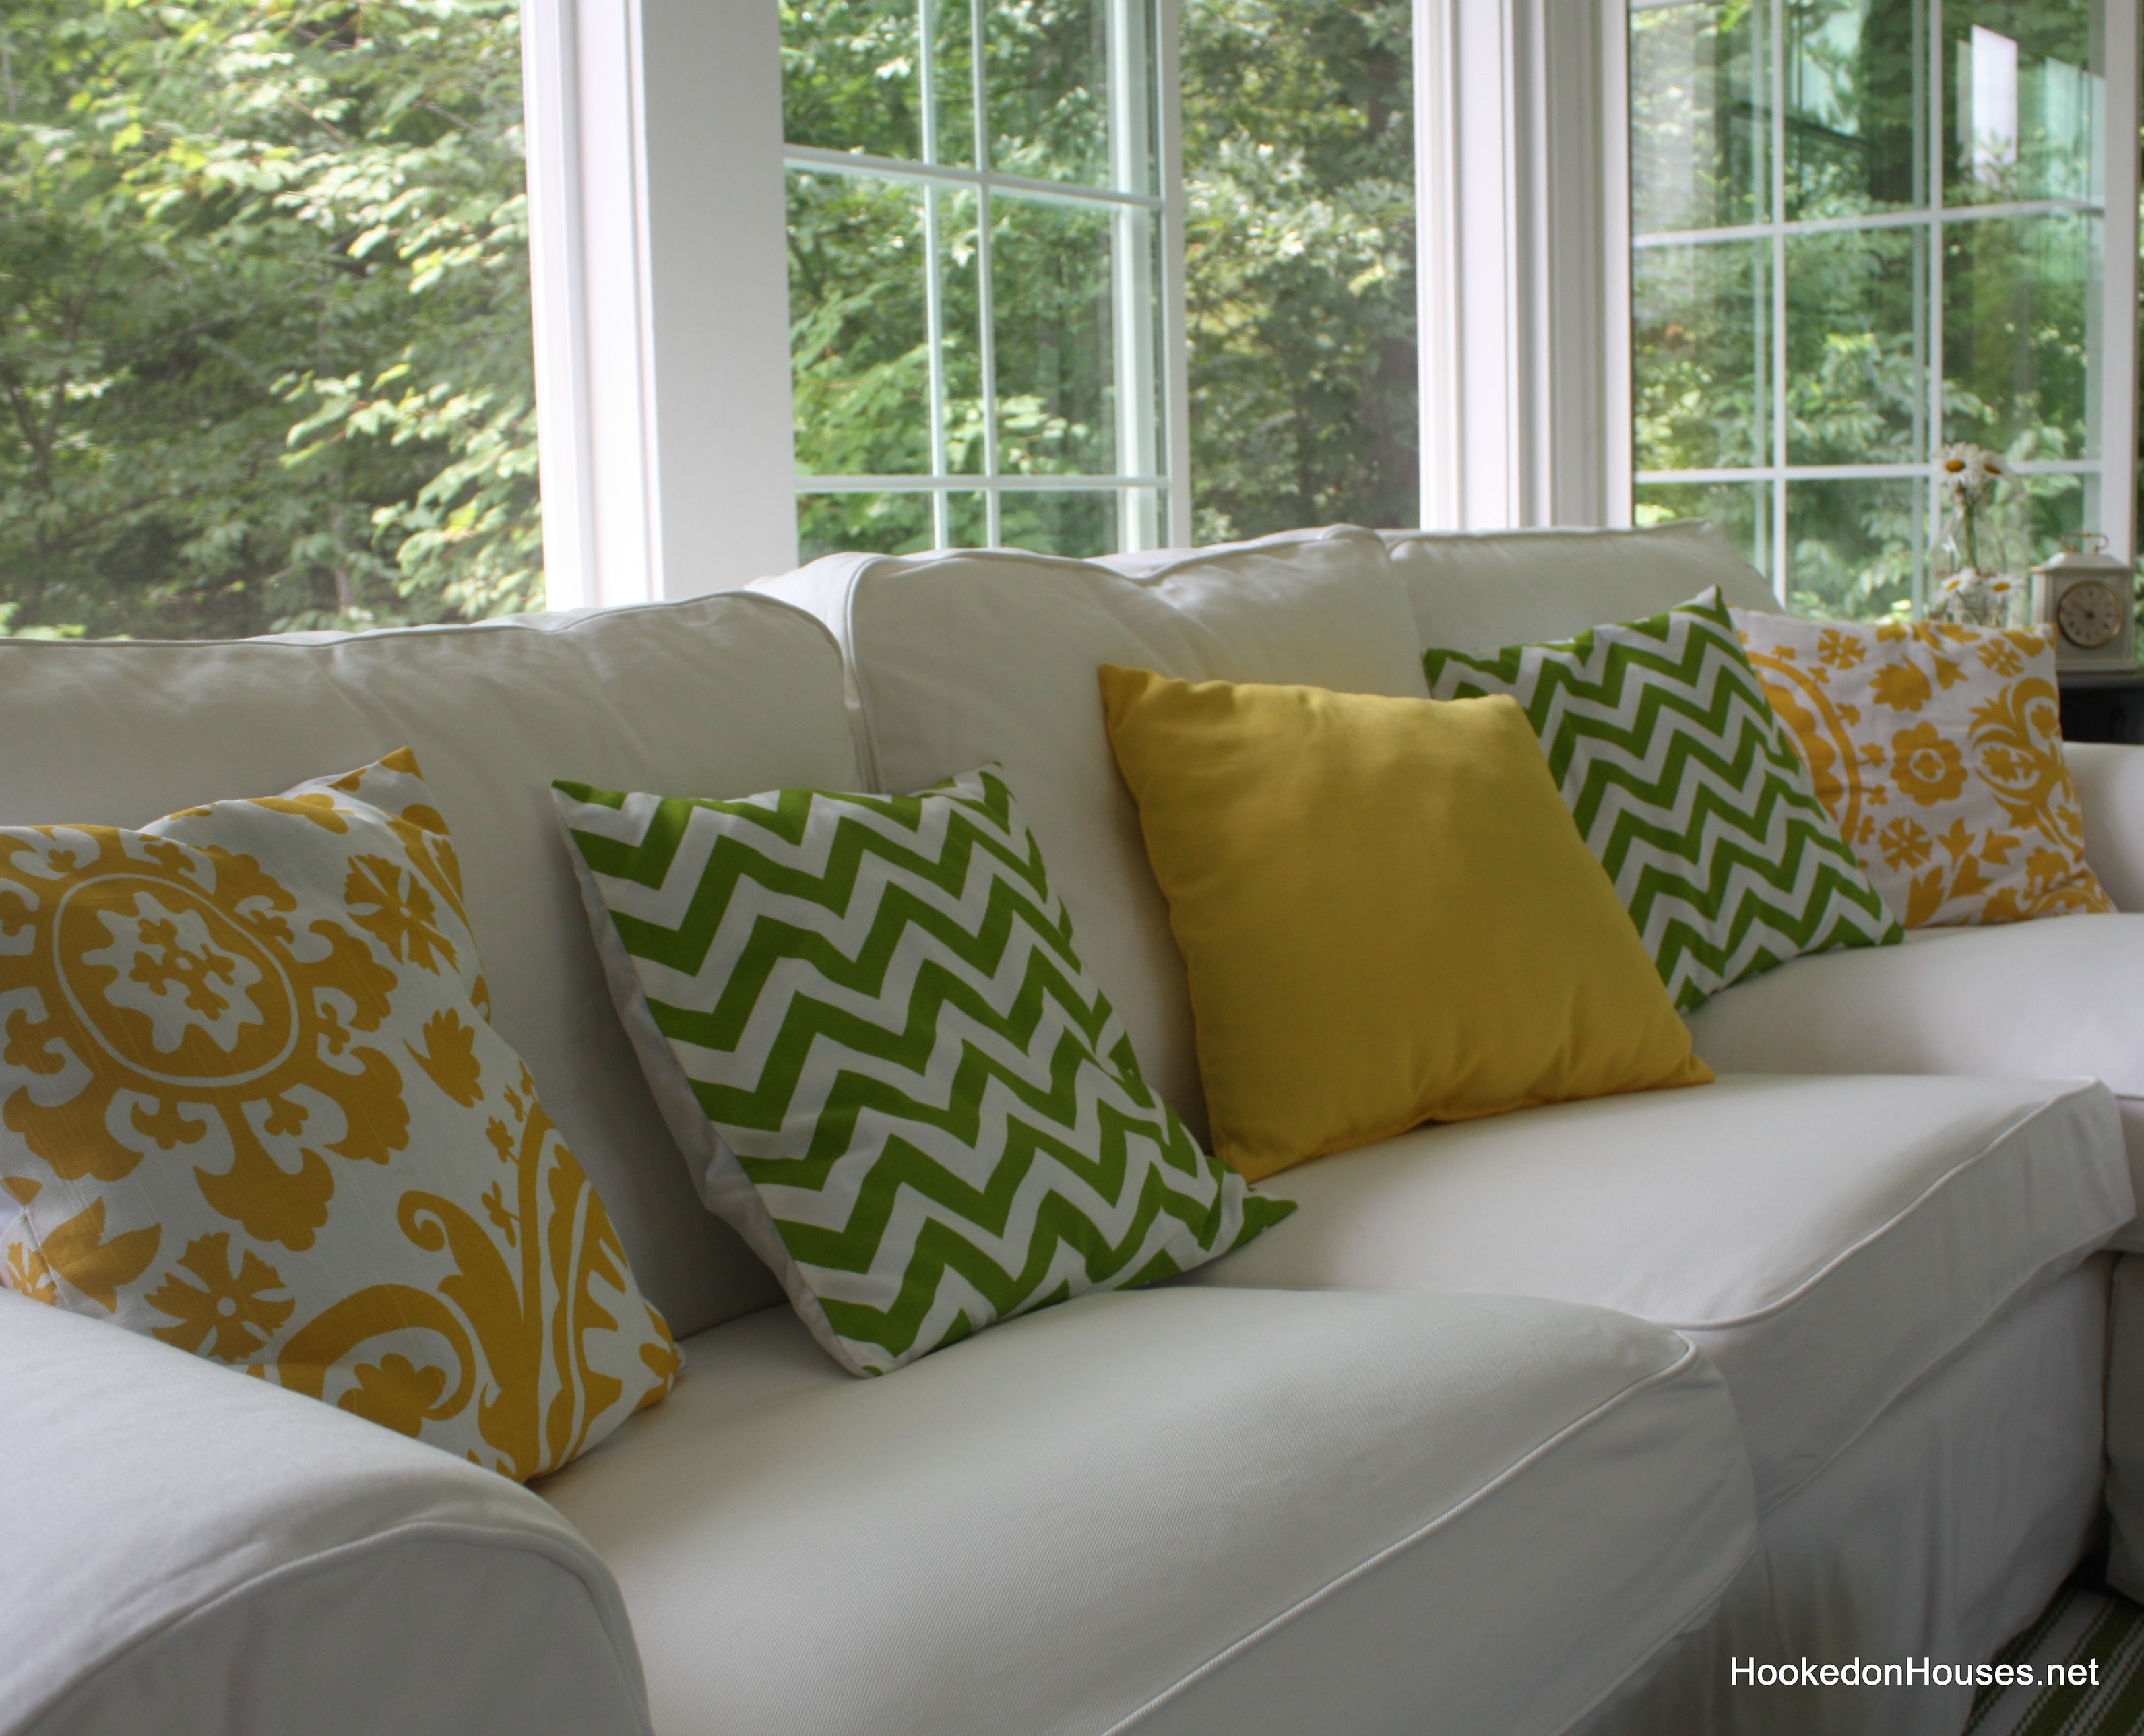 Great Close Up Of New Pillows On Sofa 7